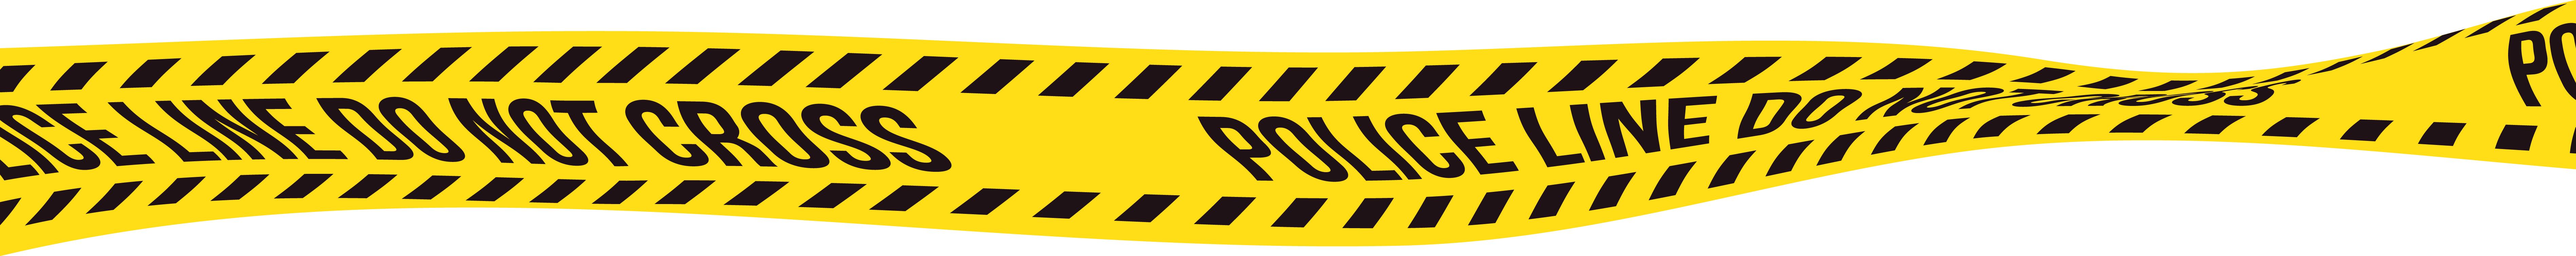 Police tape png images. Policeman clipart crime